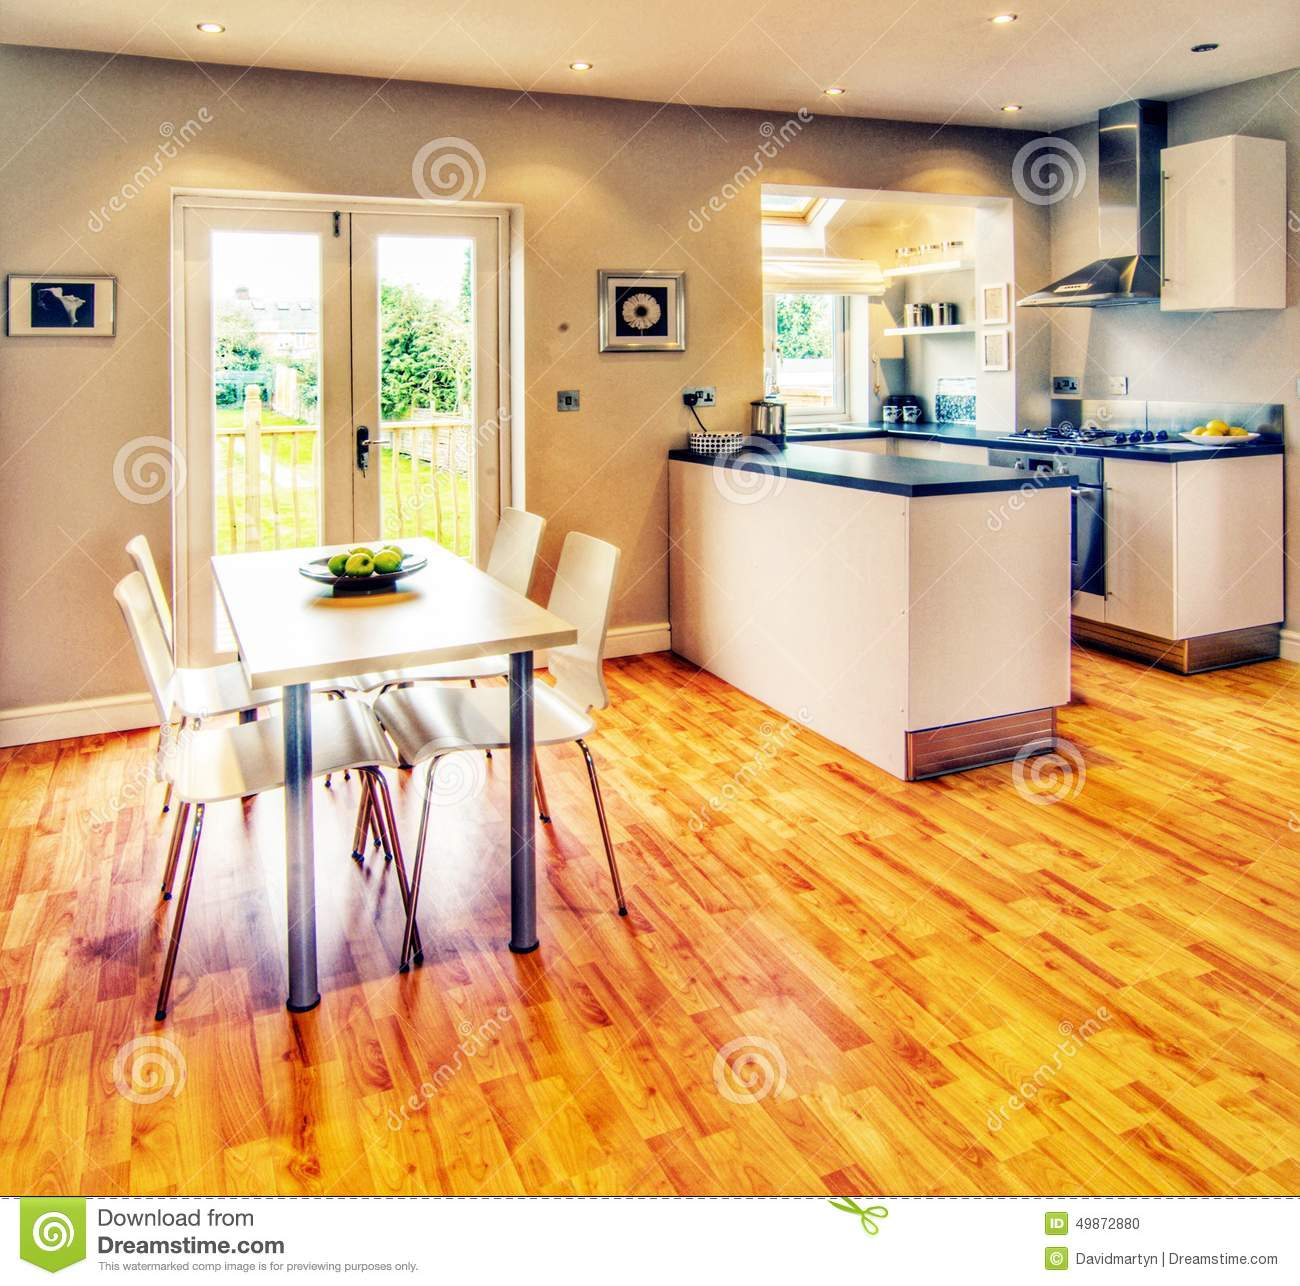 House stock photo image 49872880 - How to take interior photos for real estate ...